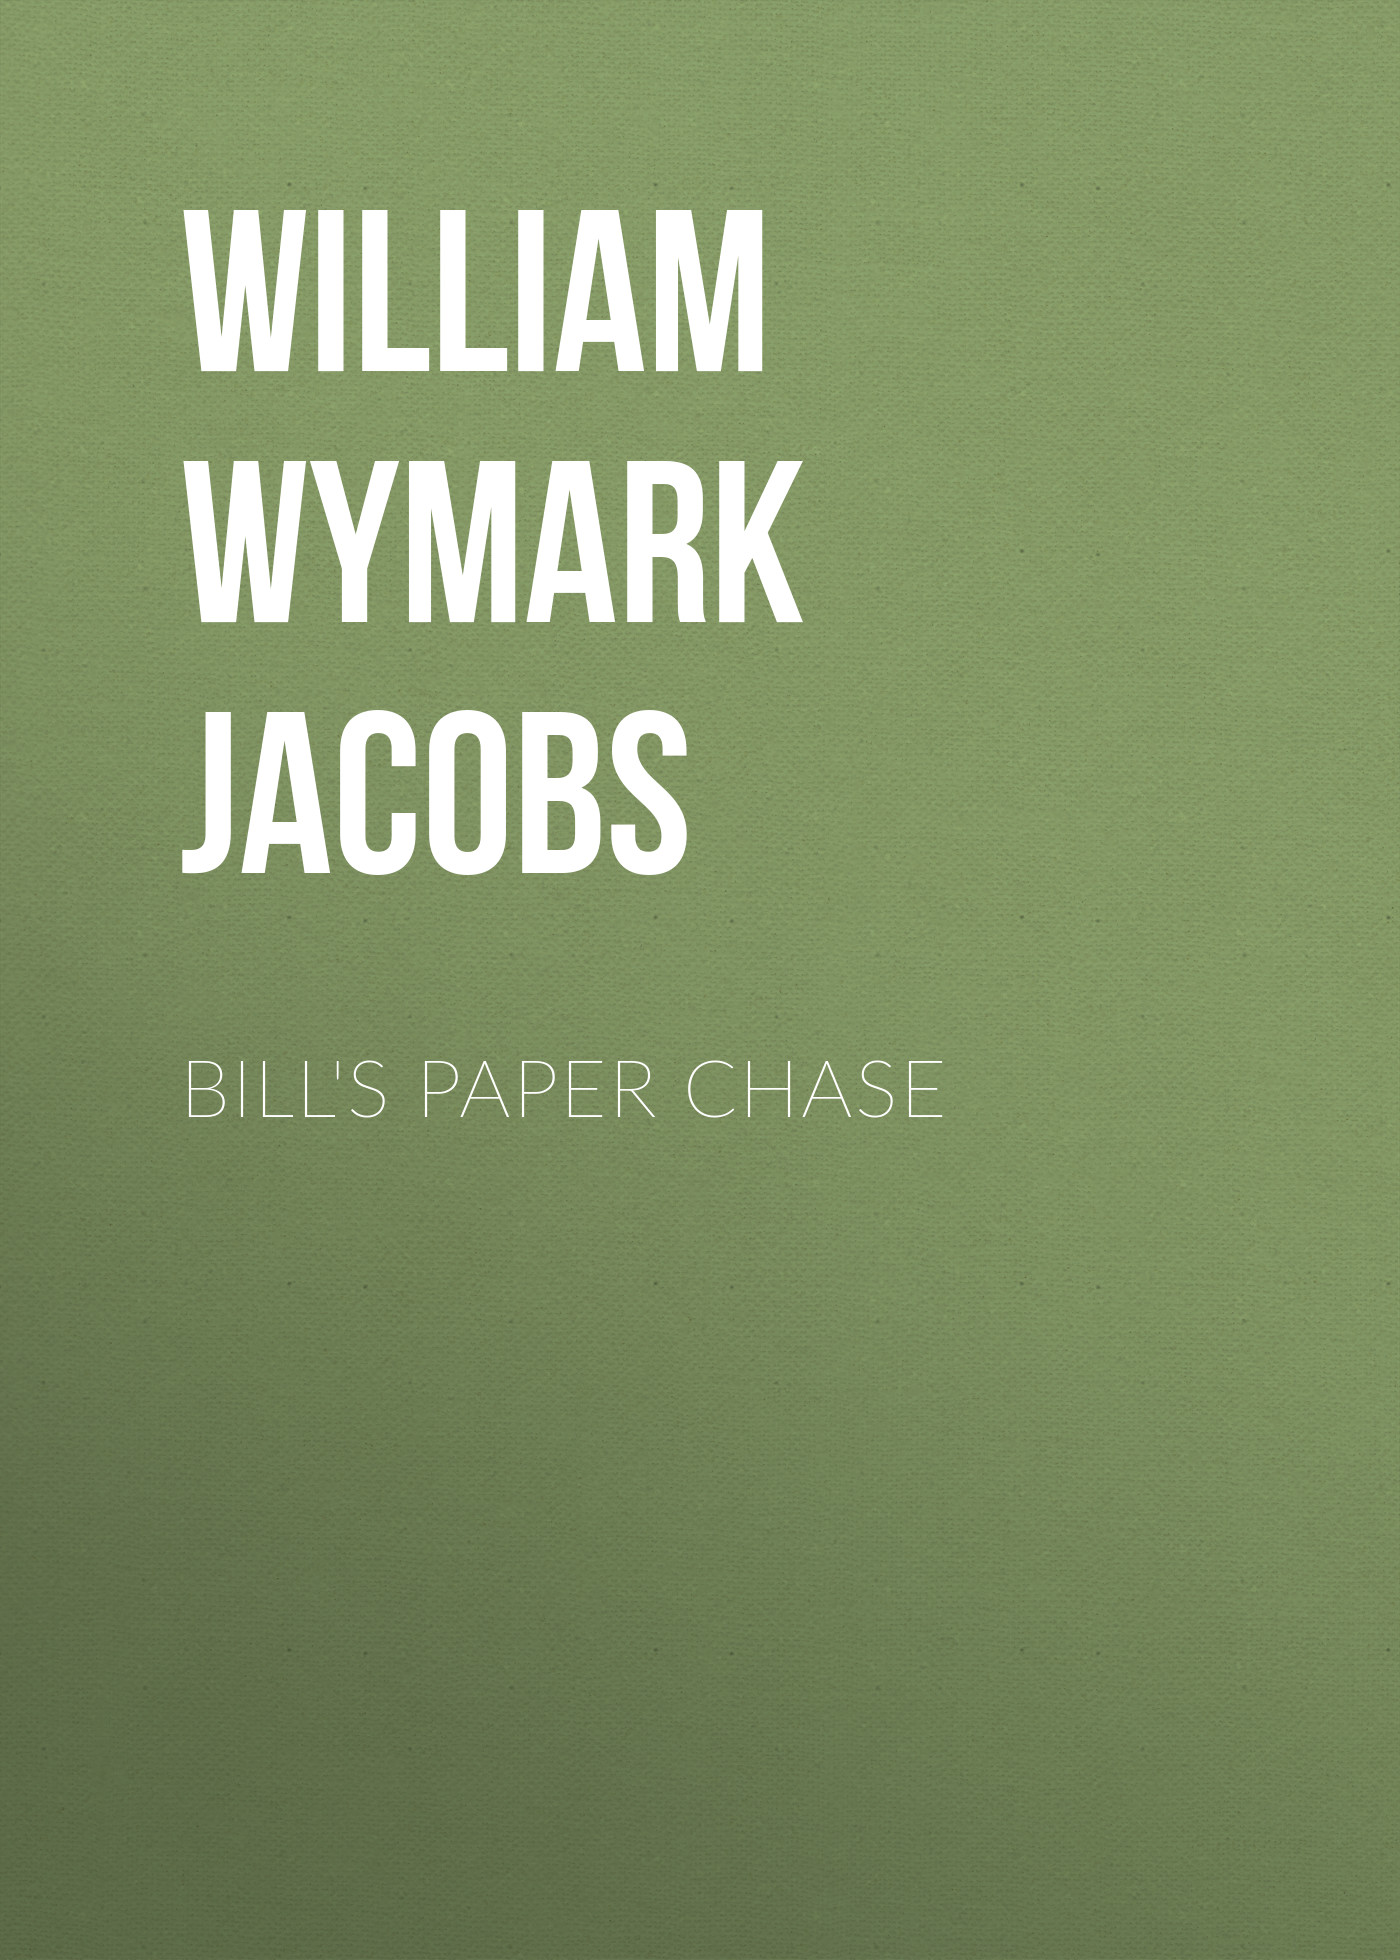 Bill's Paper Chase